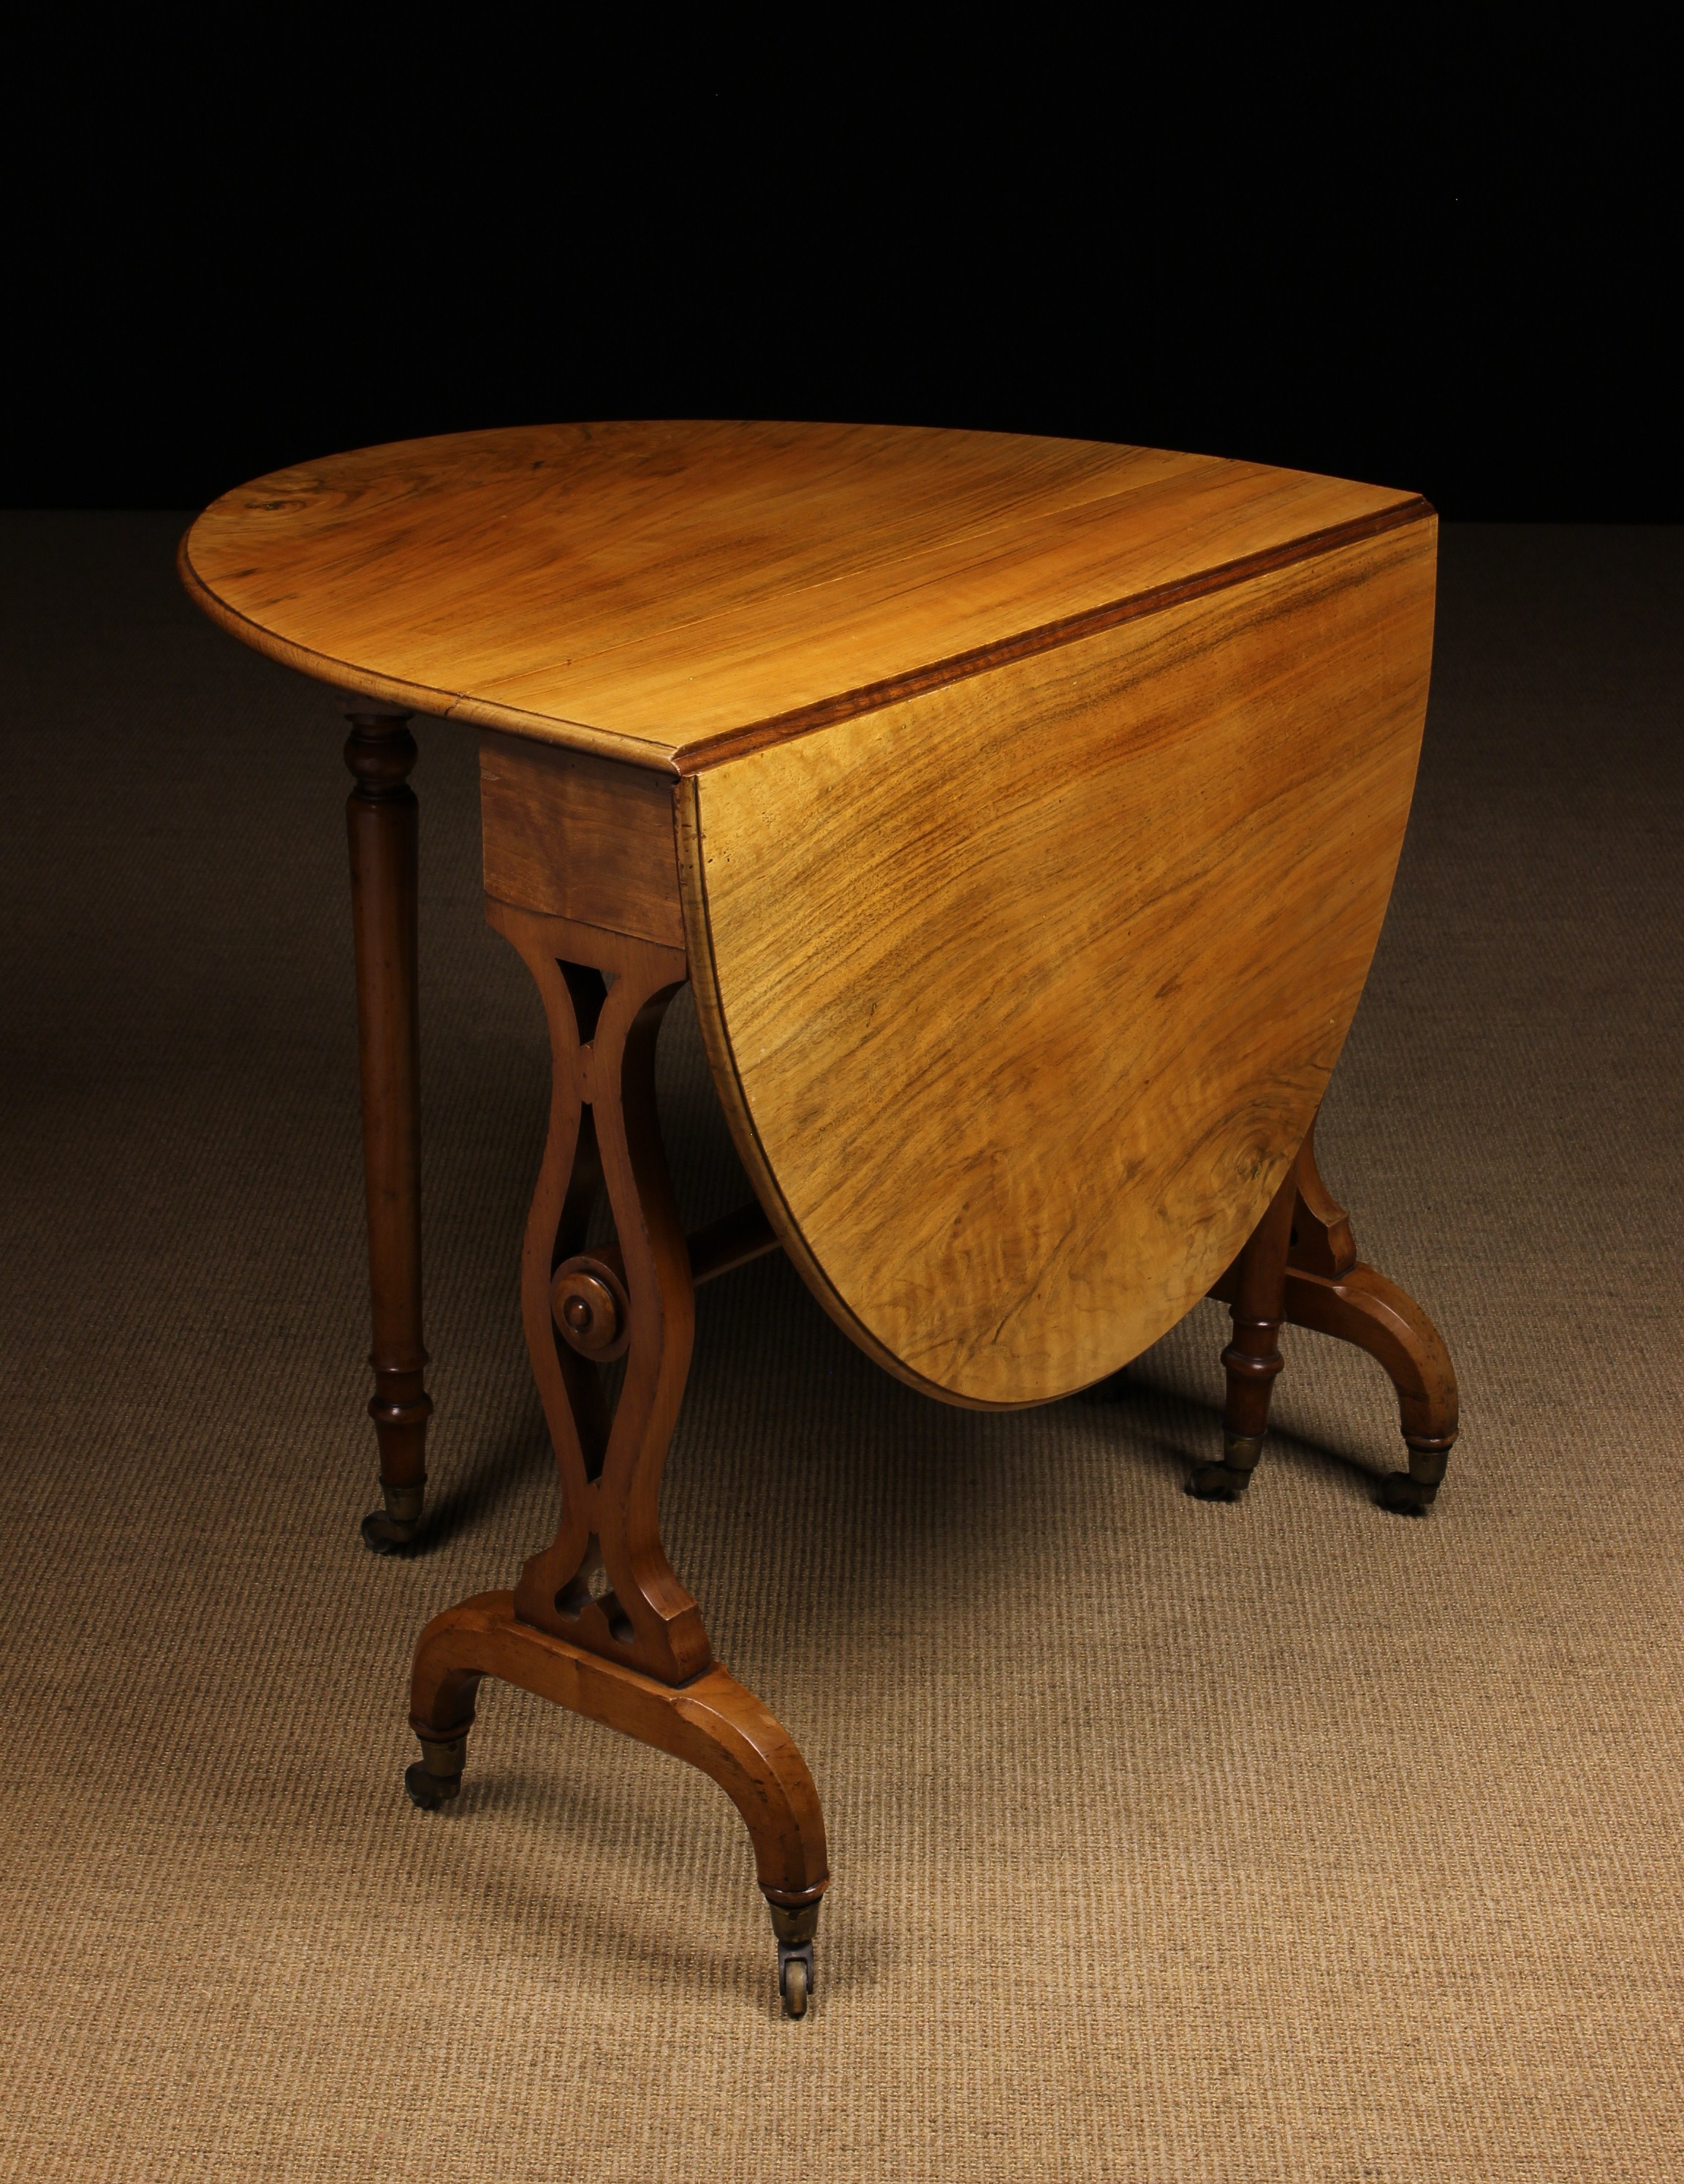 A Fine Early Victorian Holland & Sons Walnut Sutherland Table.